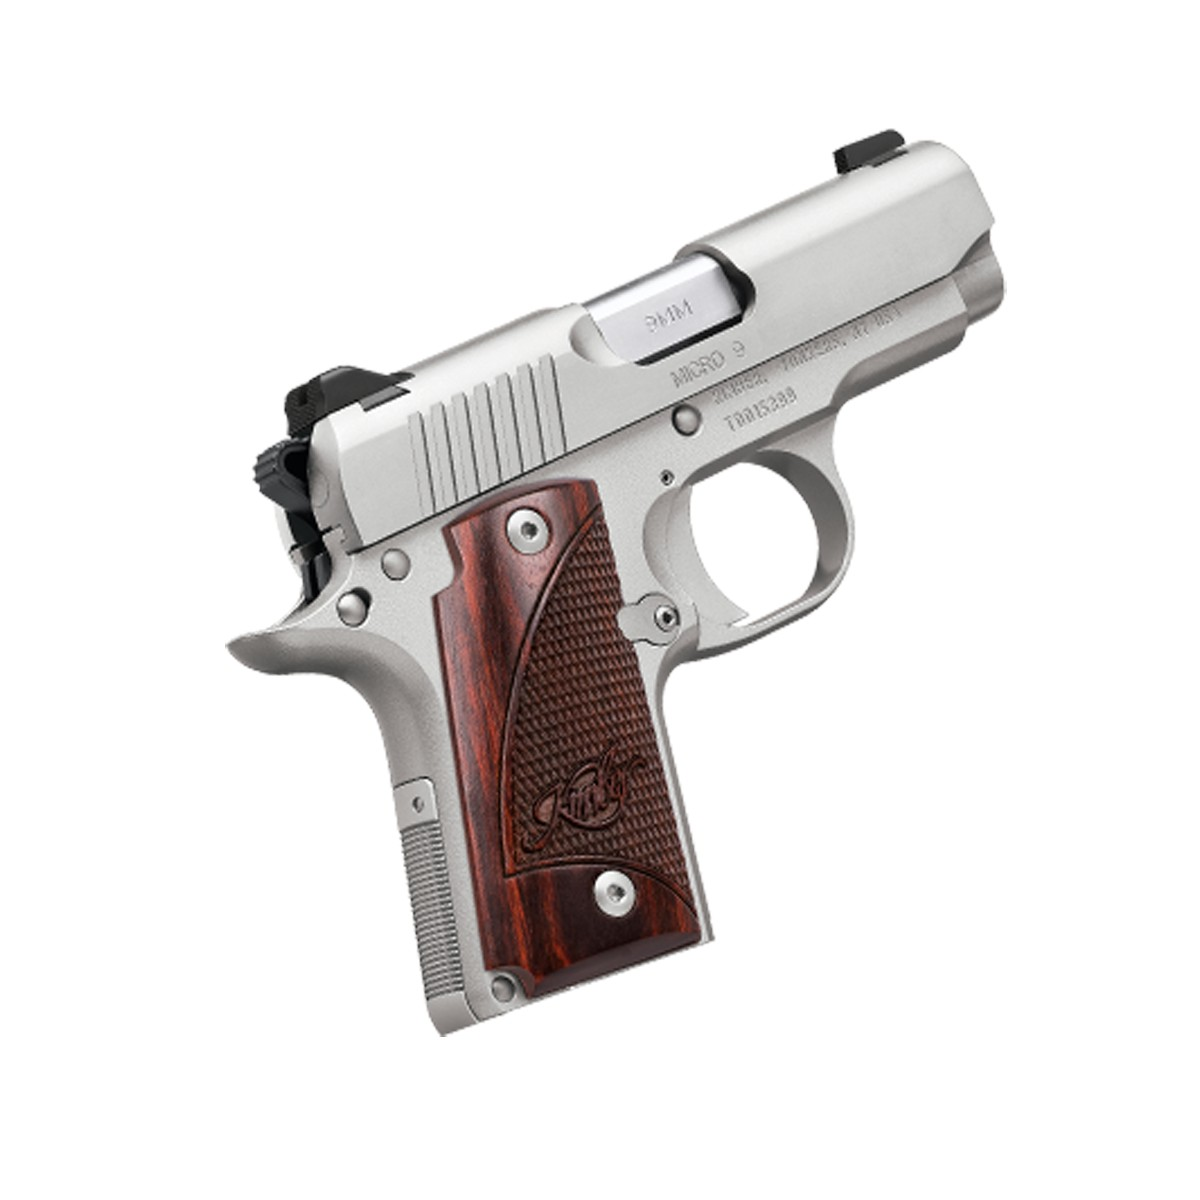 Kimber Micro 9mm Stainless Steel Handgun